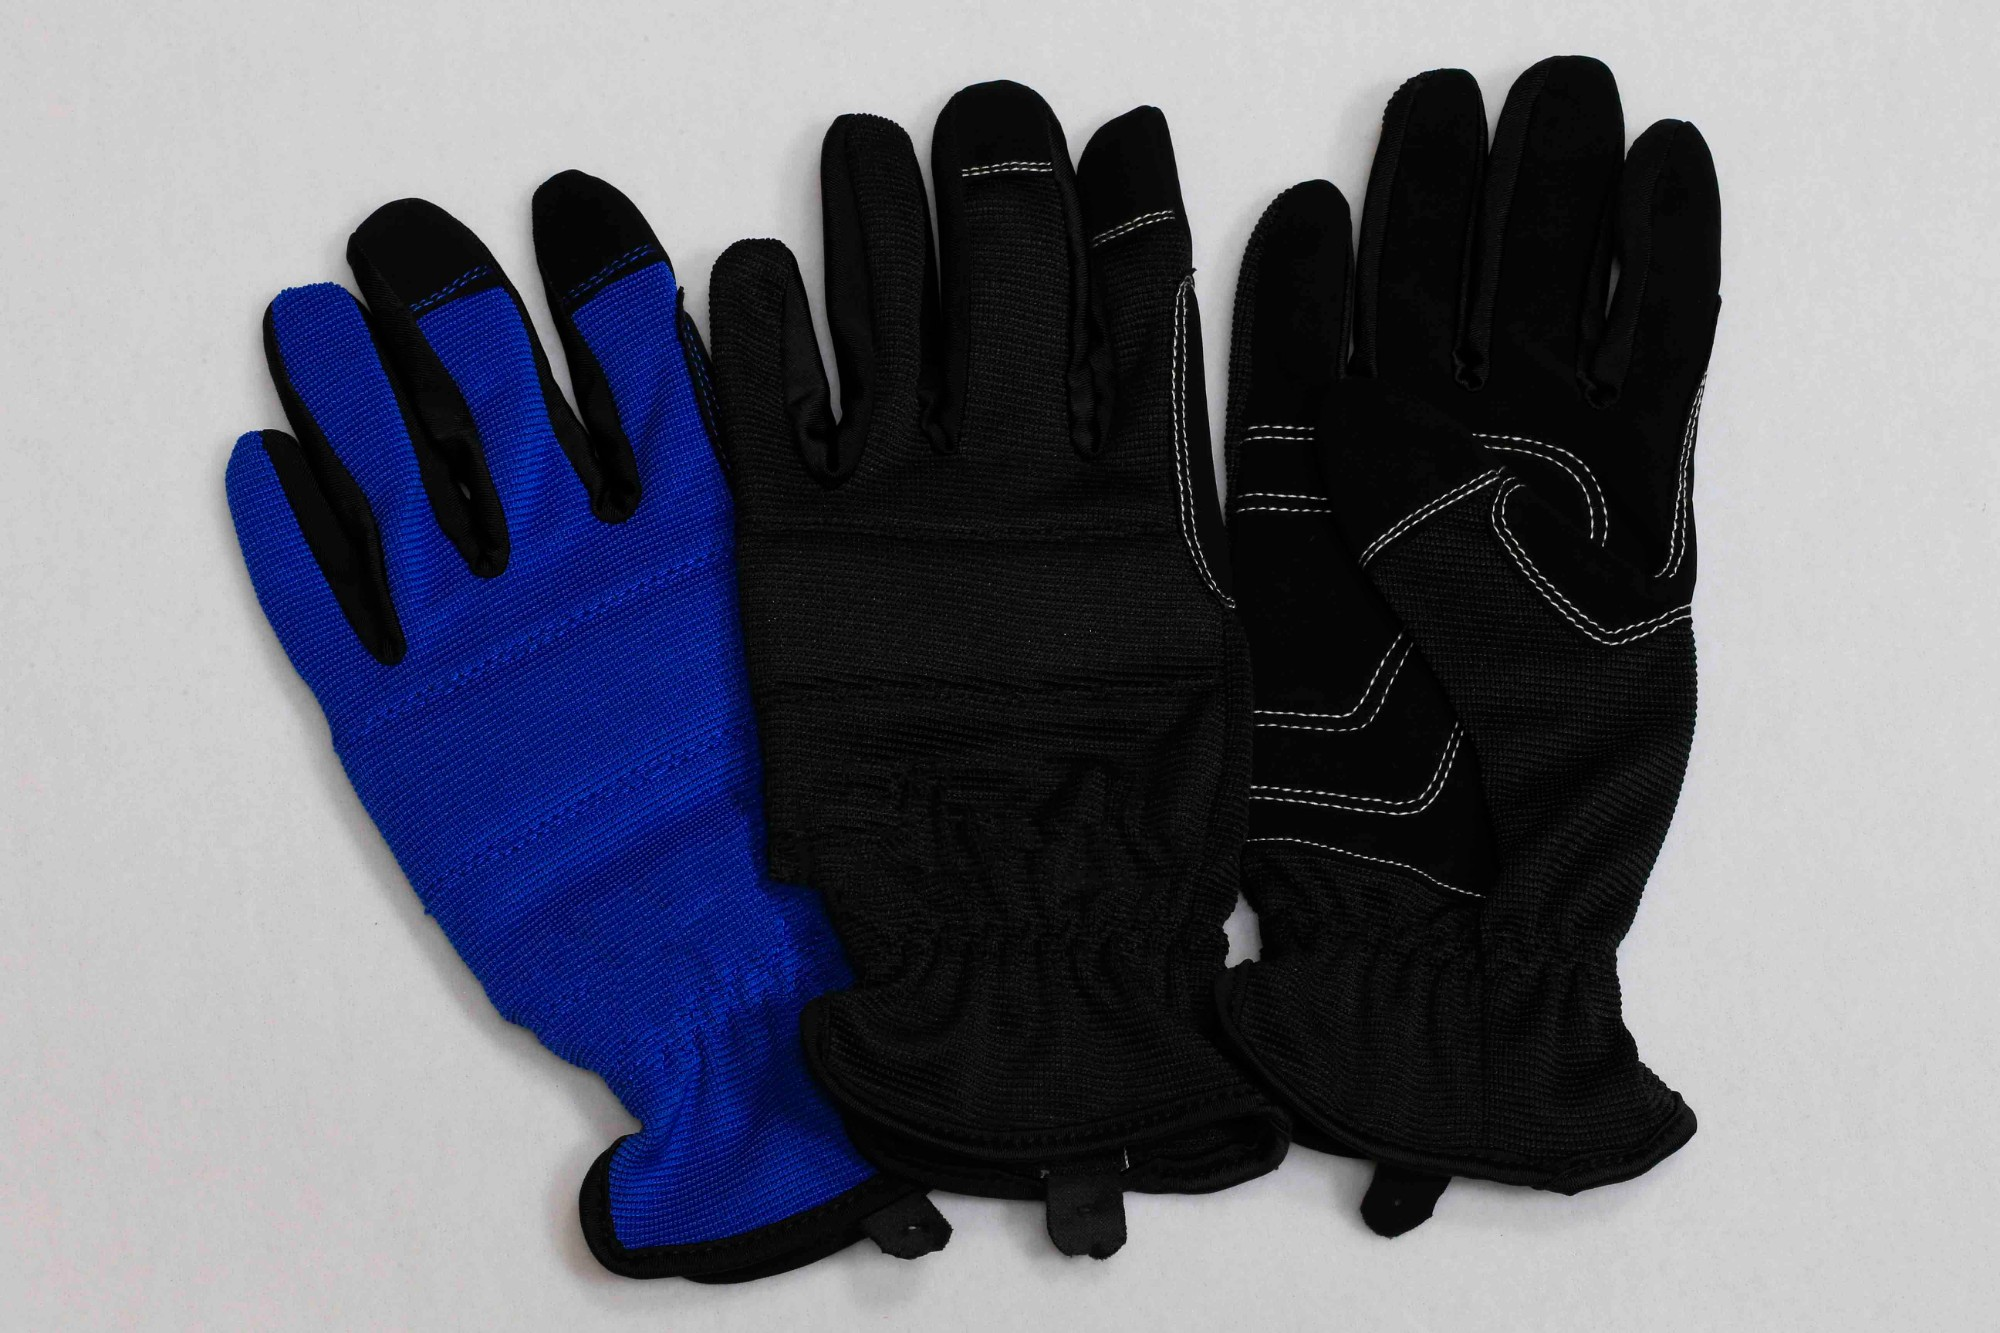 work glove Quotes,mechanic glove Quotes,reflective strip Gloves Quotes